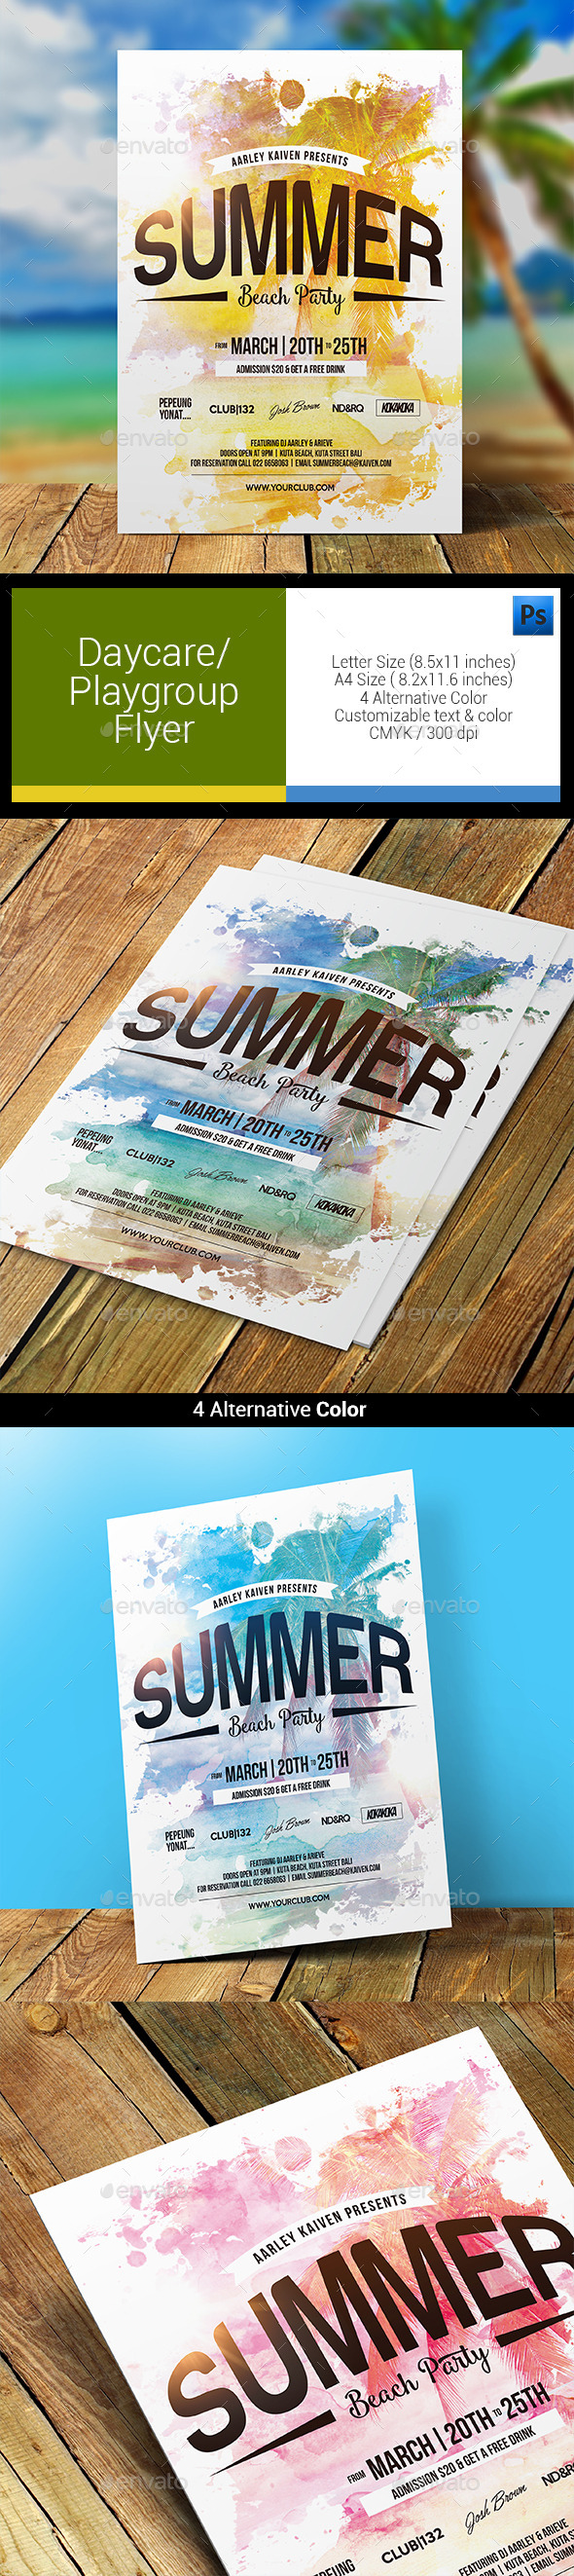 GraphicRiver Summer Beach Party Flyer 11866103